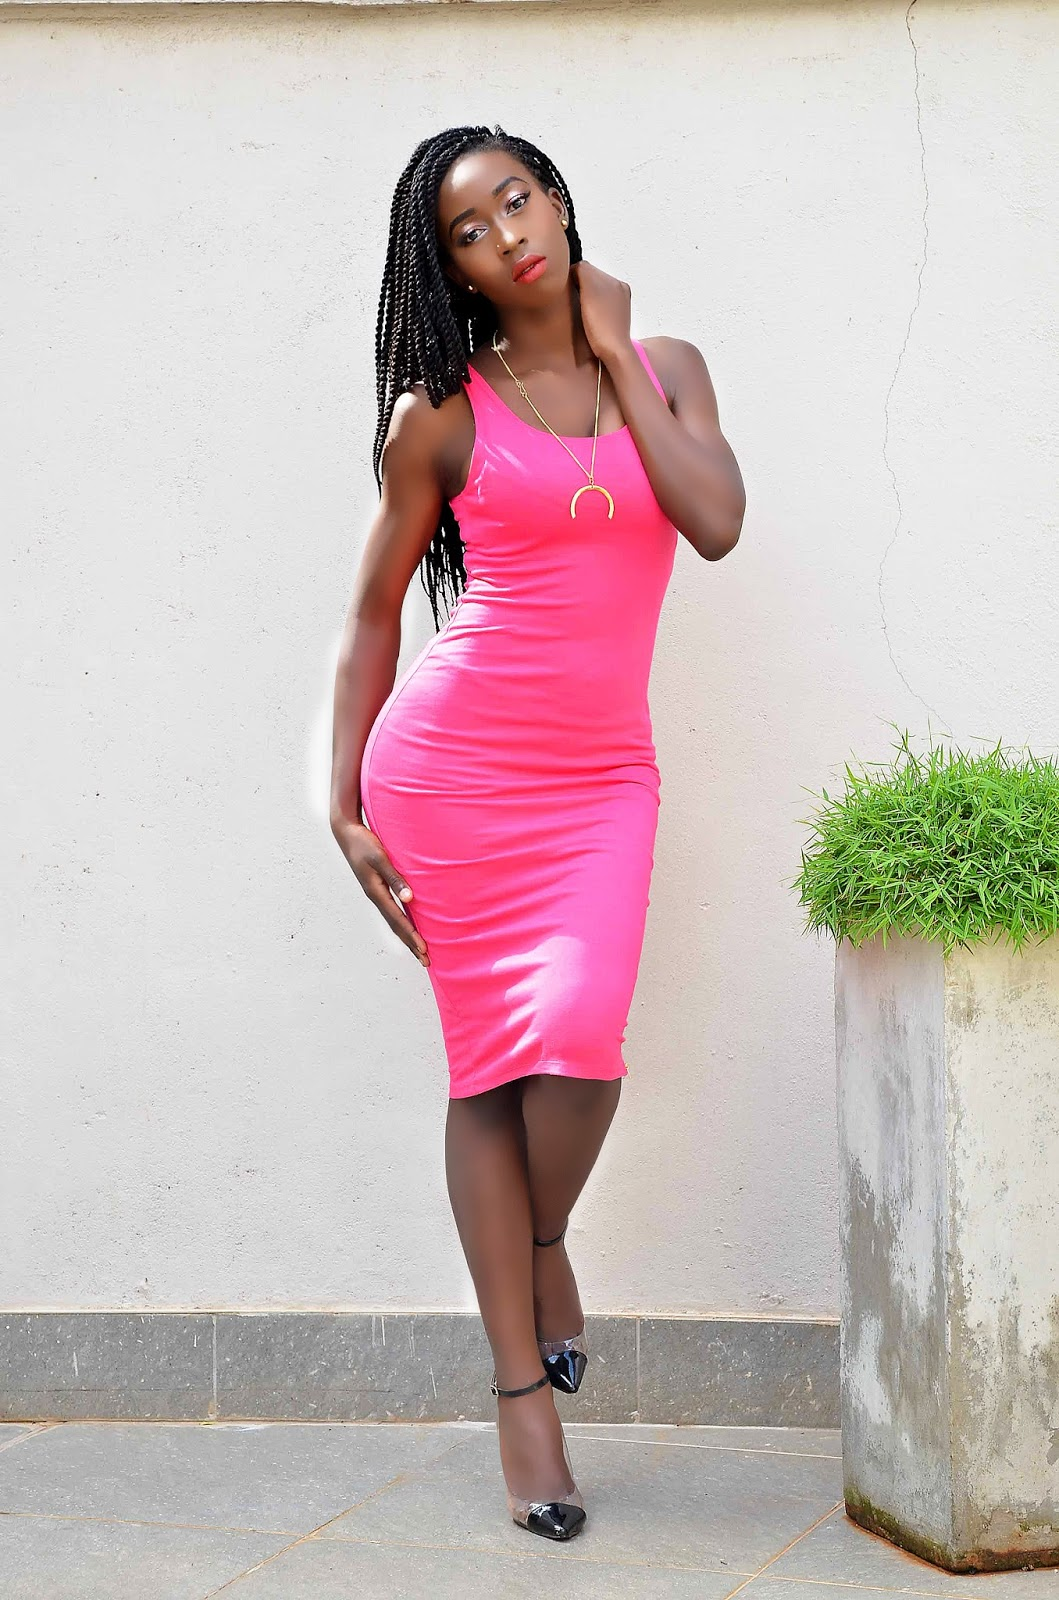 fuscia drsss, whatcolors to pair with your fuscia, colors that make a pick dress pop, how to style a pink dress, style with Ezil, Ezil, Kenyan fashion blogger.